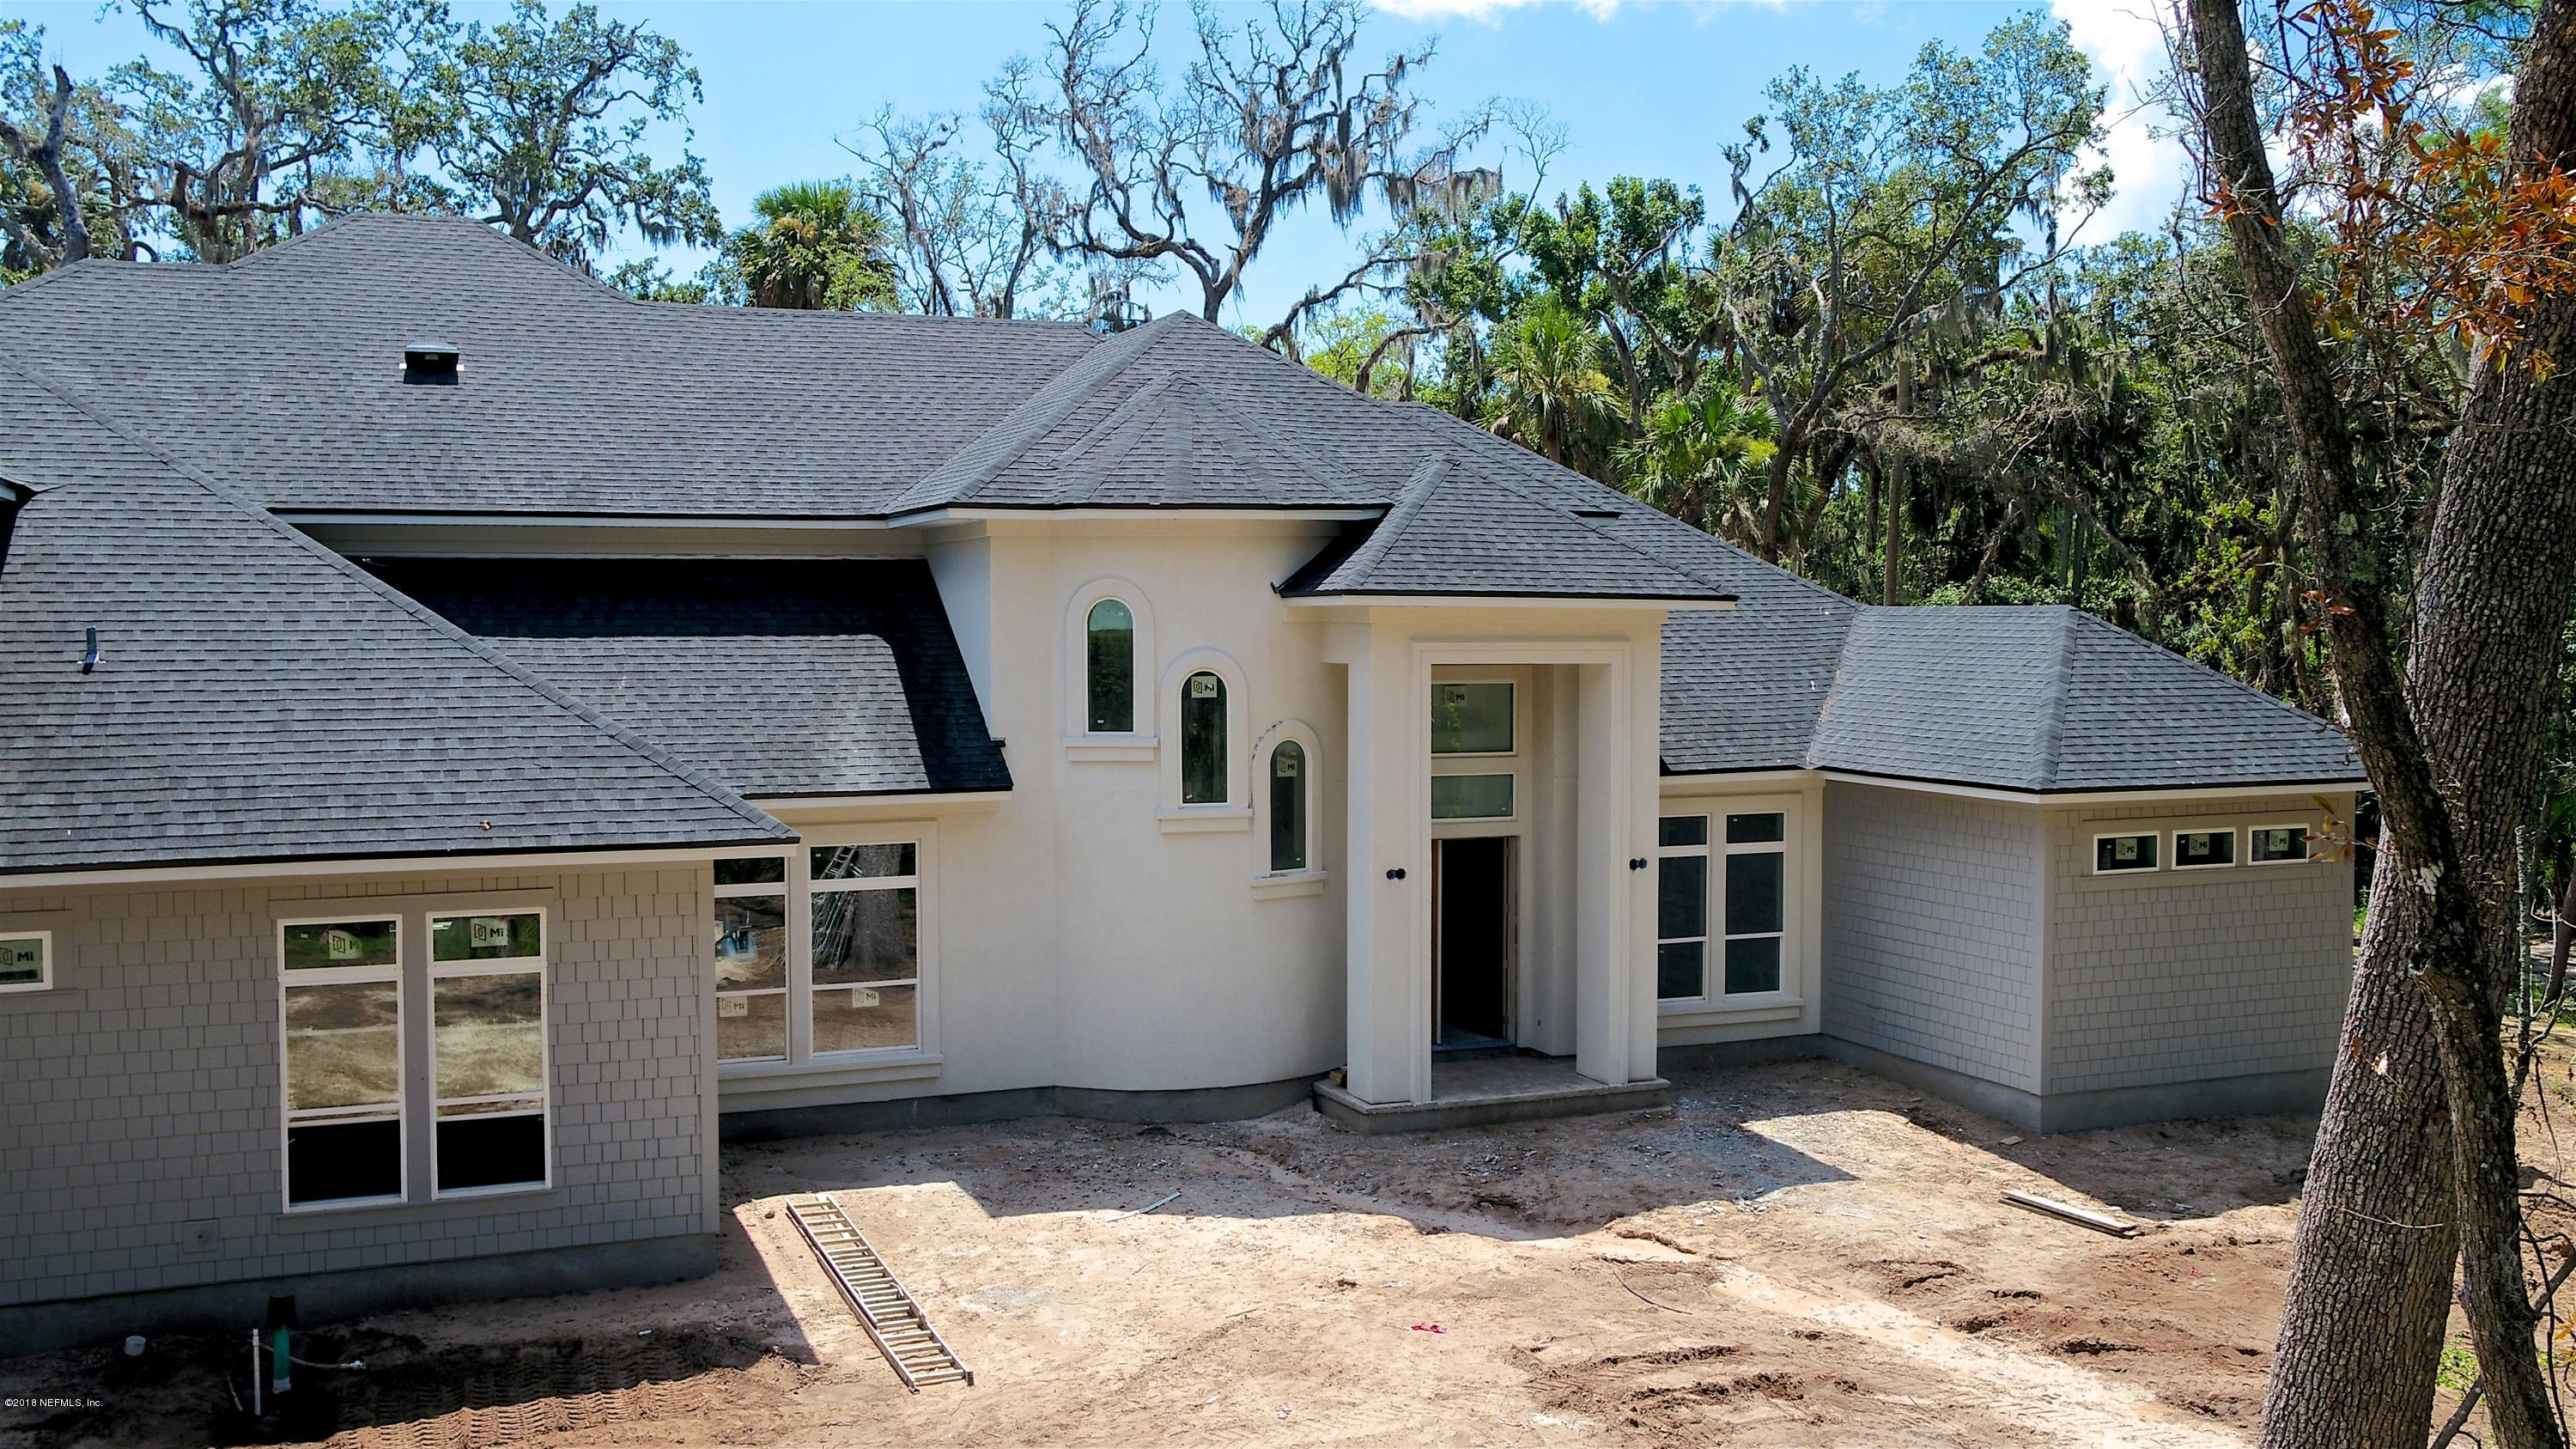 5010 BENTGRASS, PONTE VEDRA BEACH, FLORIDA 32082, 5 Bedrooms Bedrooms, ,5 BathroomsBathrooms,Residential - single family,For sale,BENTGRASS,902367